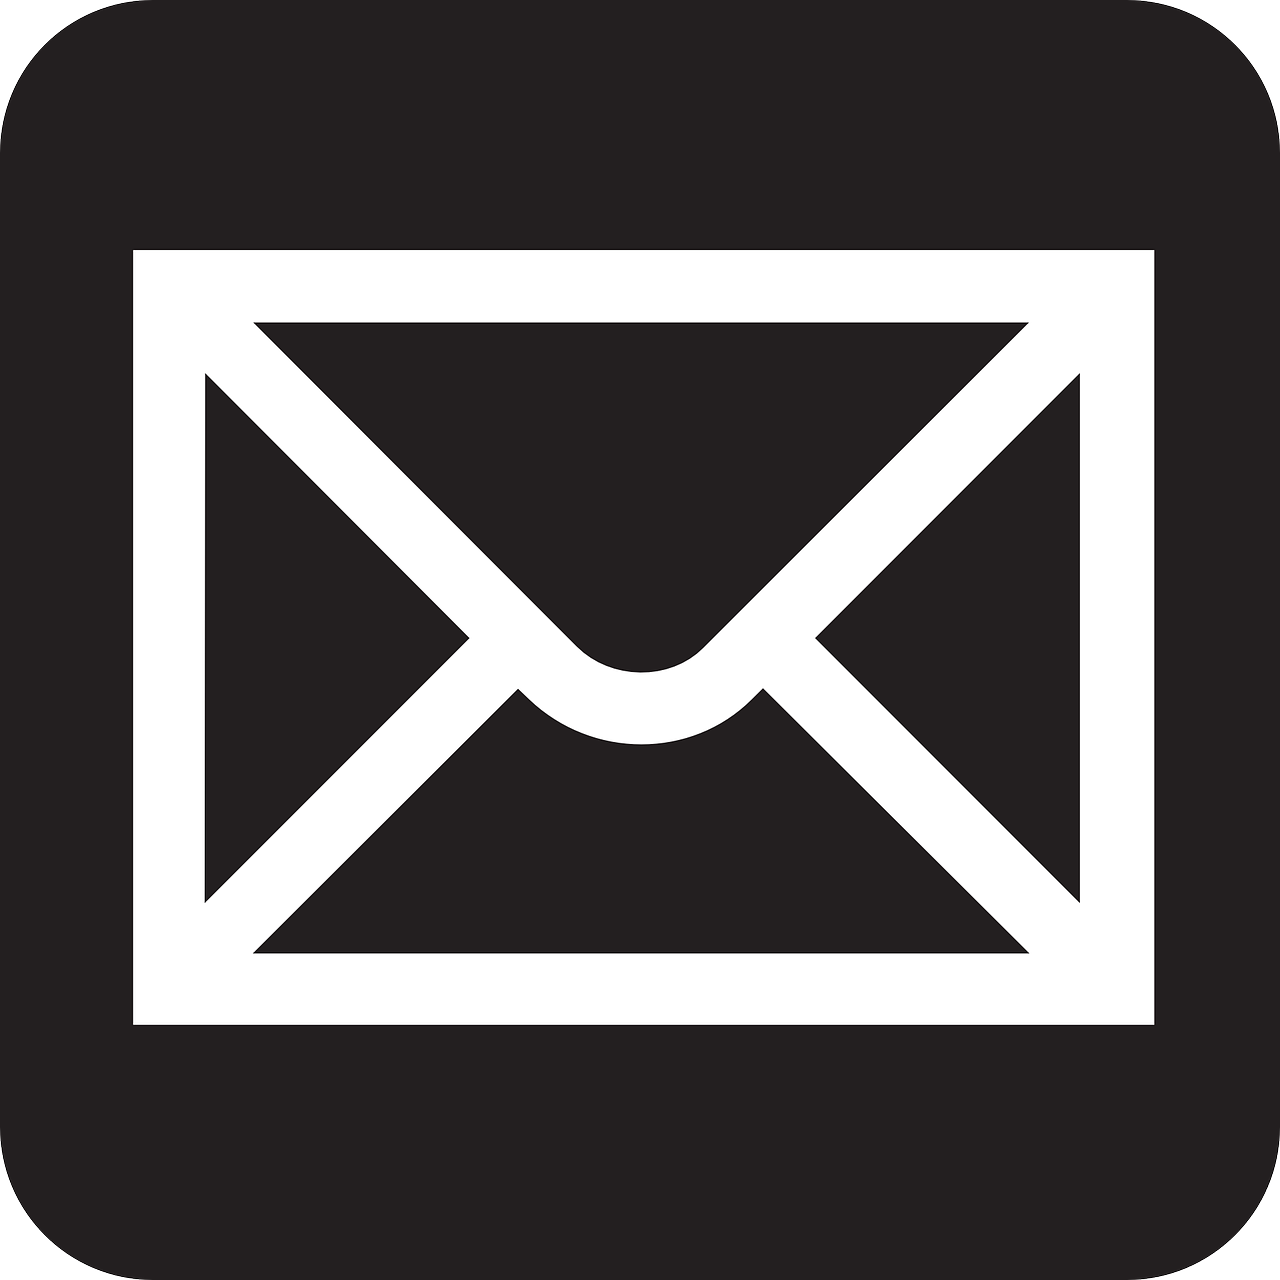 Mail Post E Mail   Free vector graphic on Pixabay